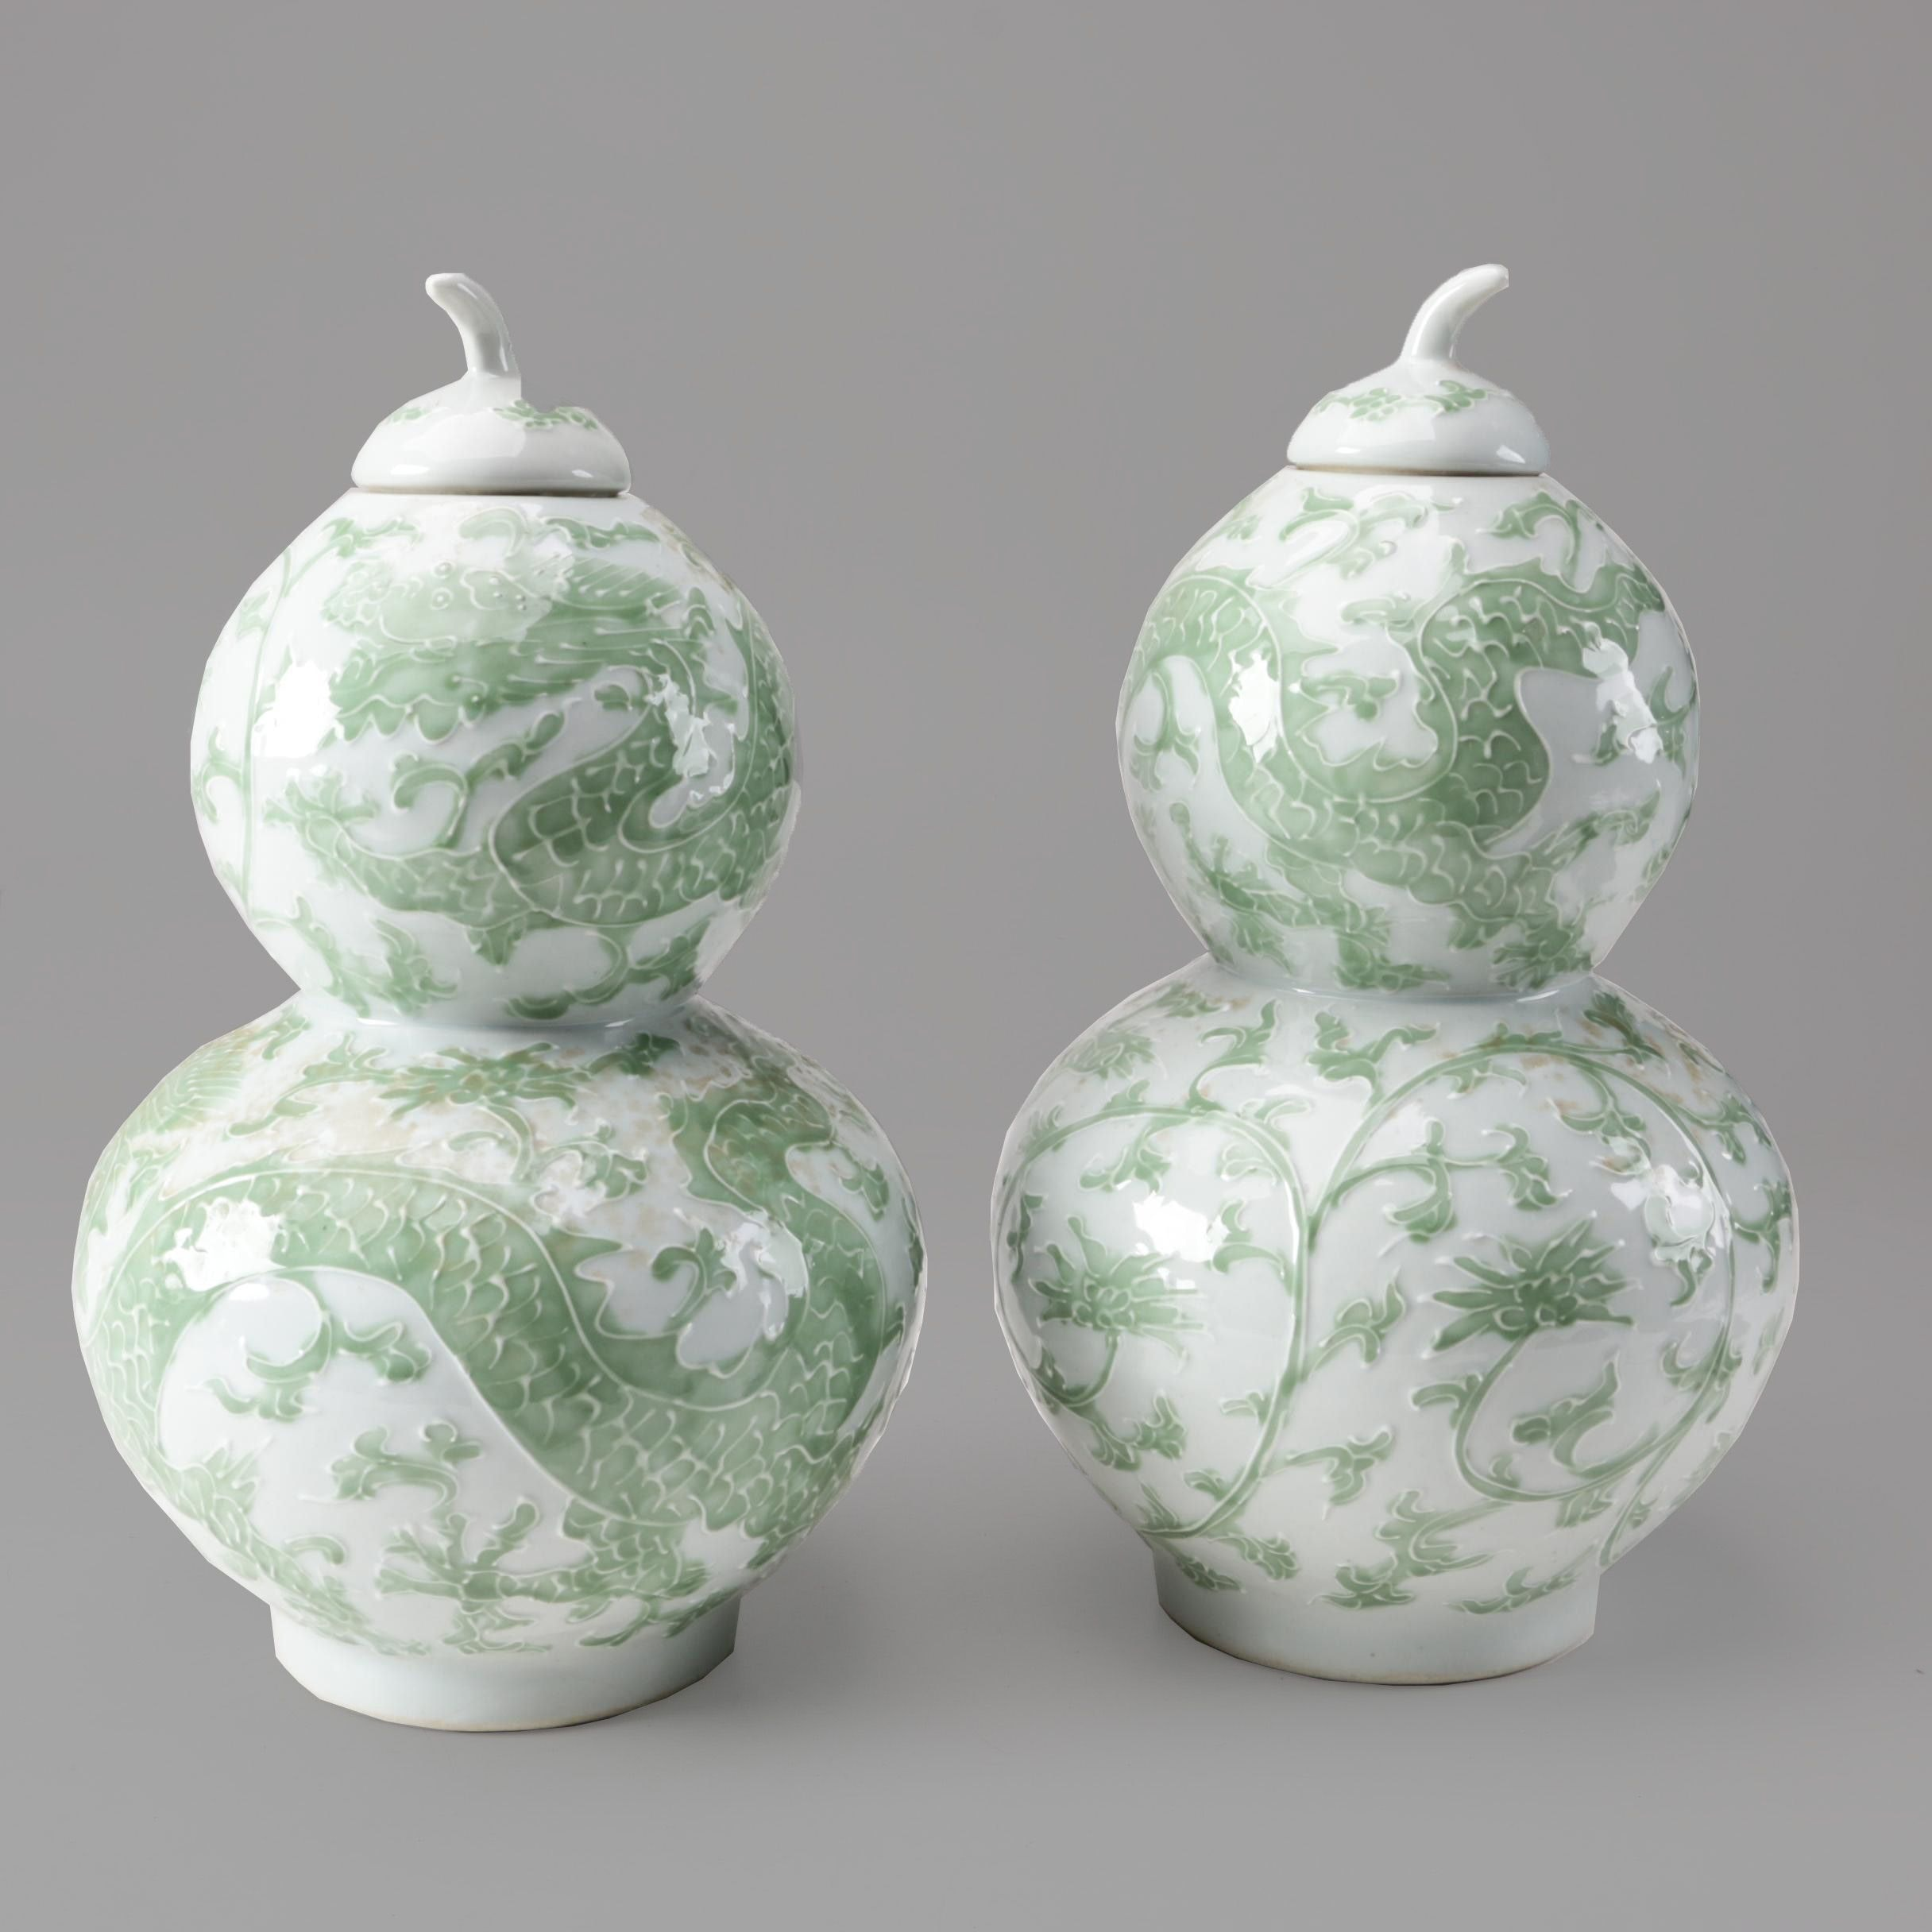 Chinese Double Gourd Lidded Jars with Dragon Motifs